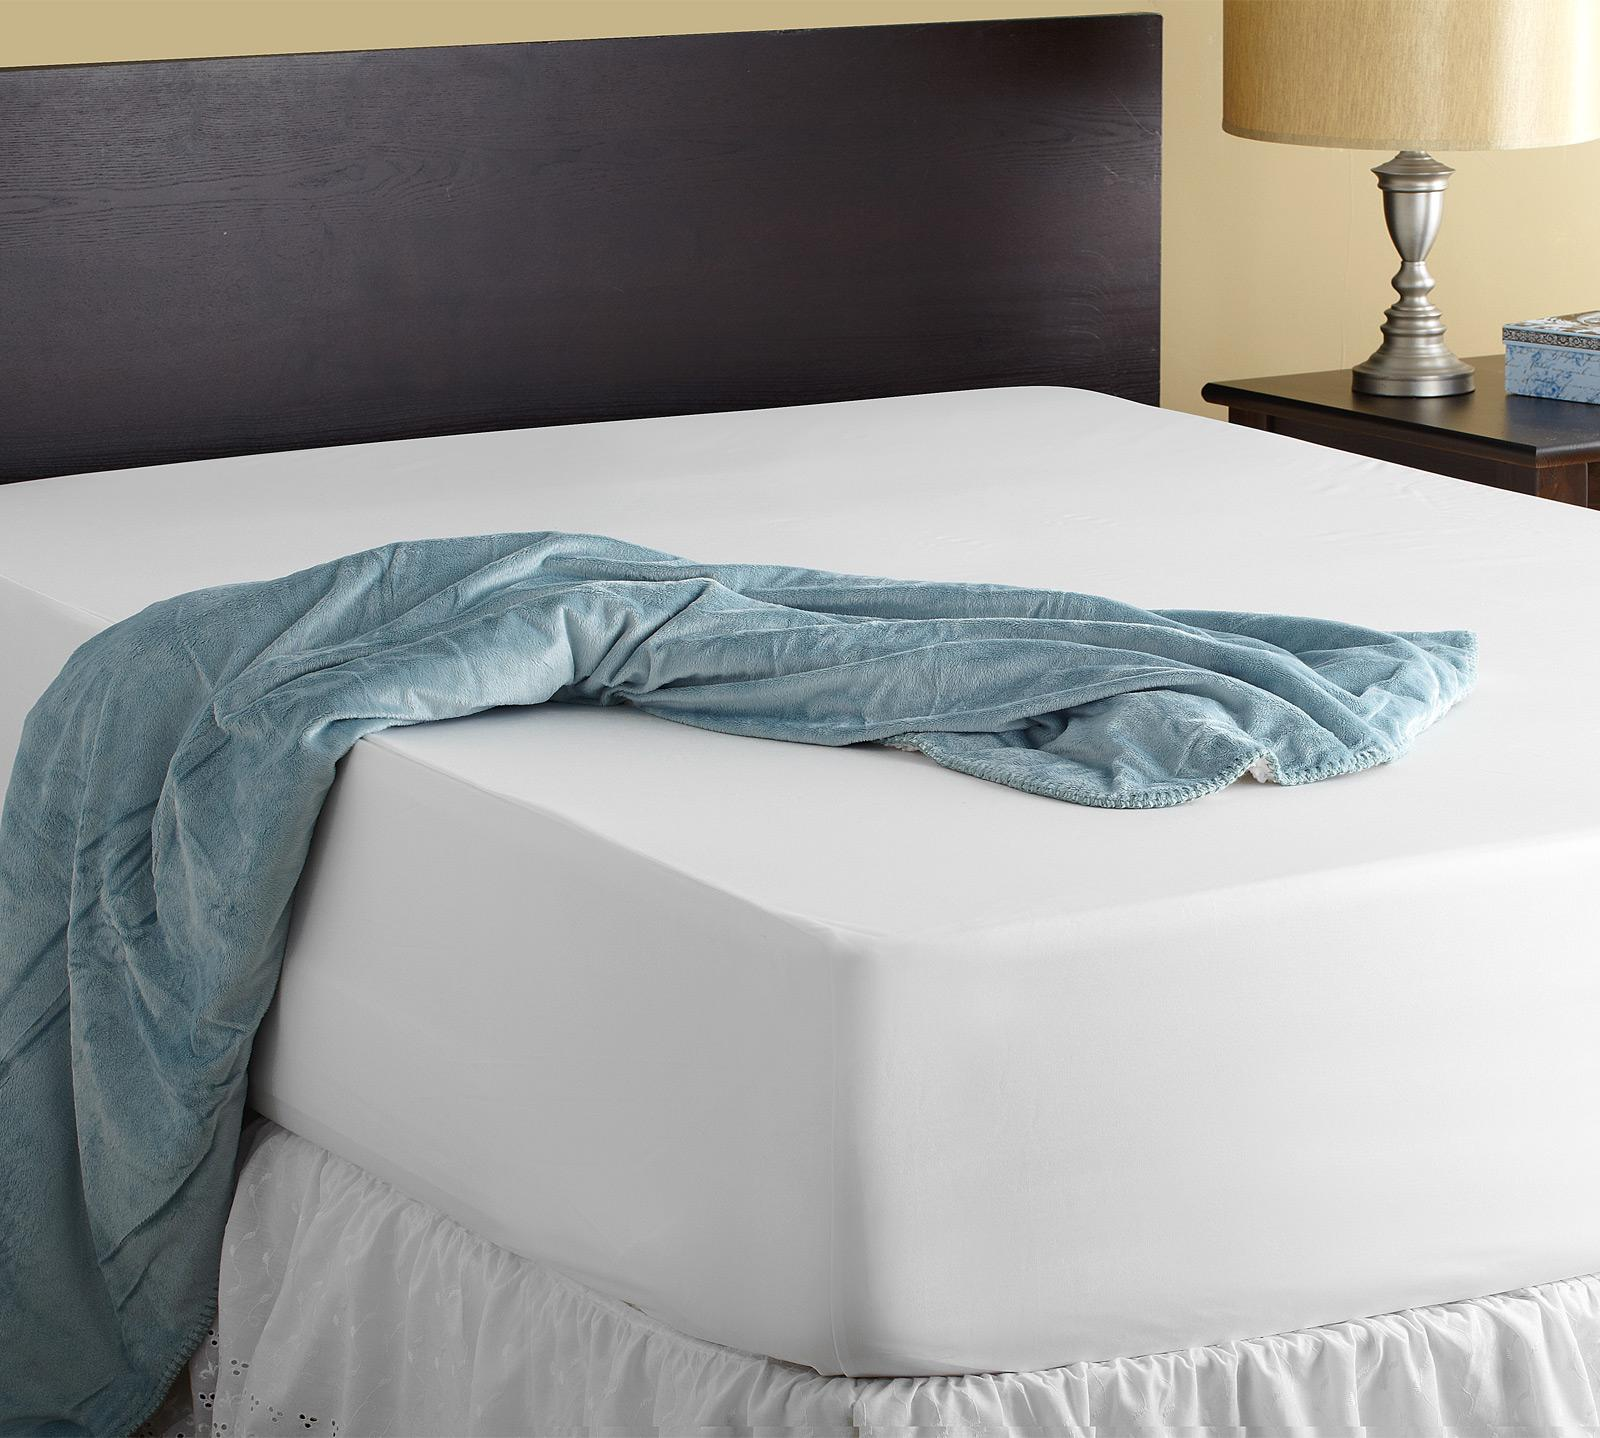 BedLiner, Fits Mattresses 14 To 18 Inches Thick